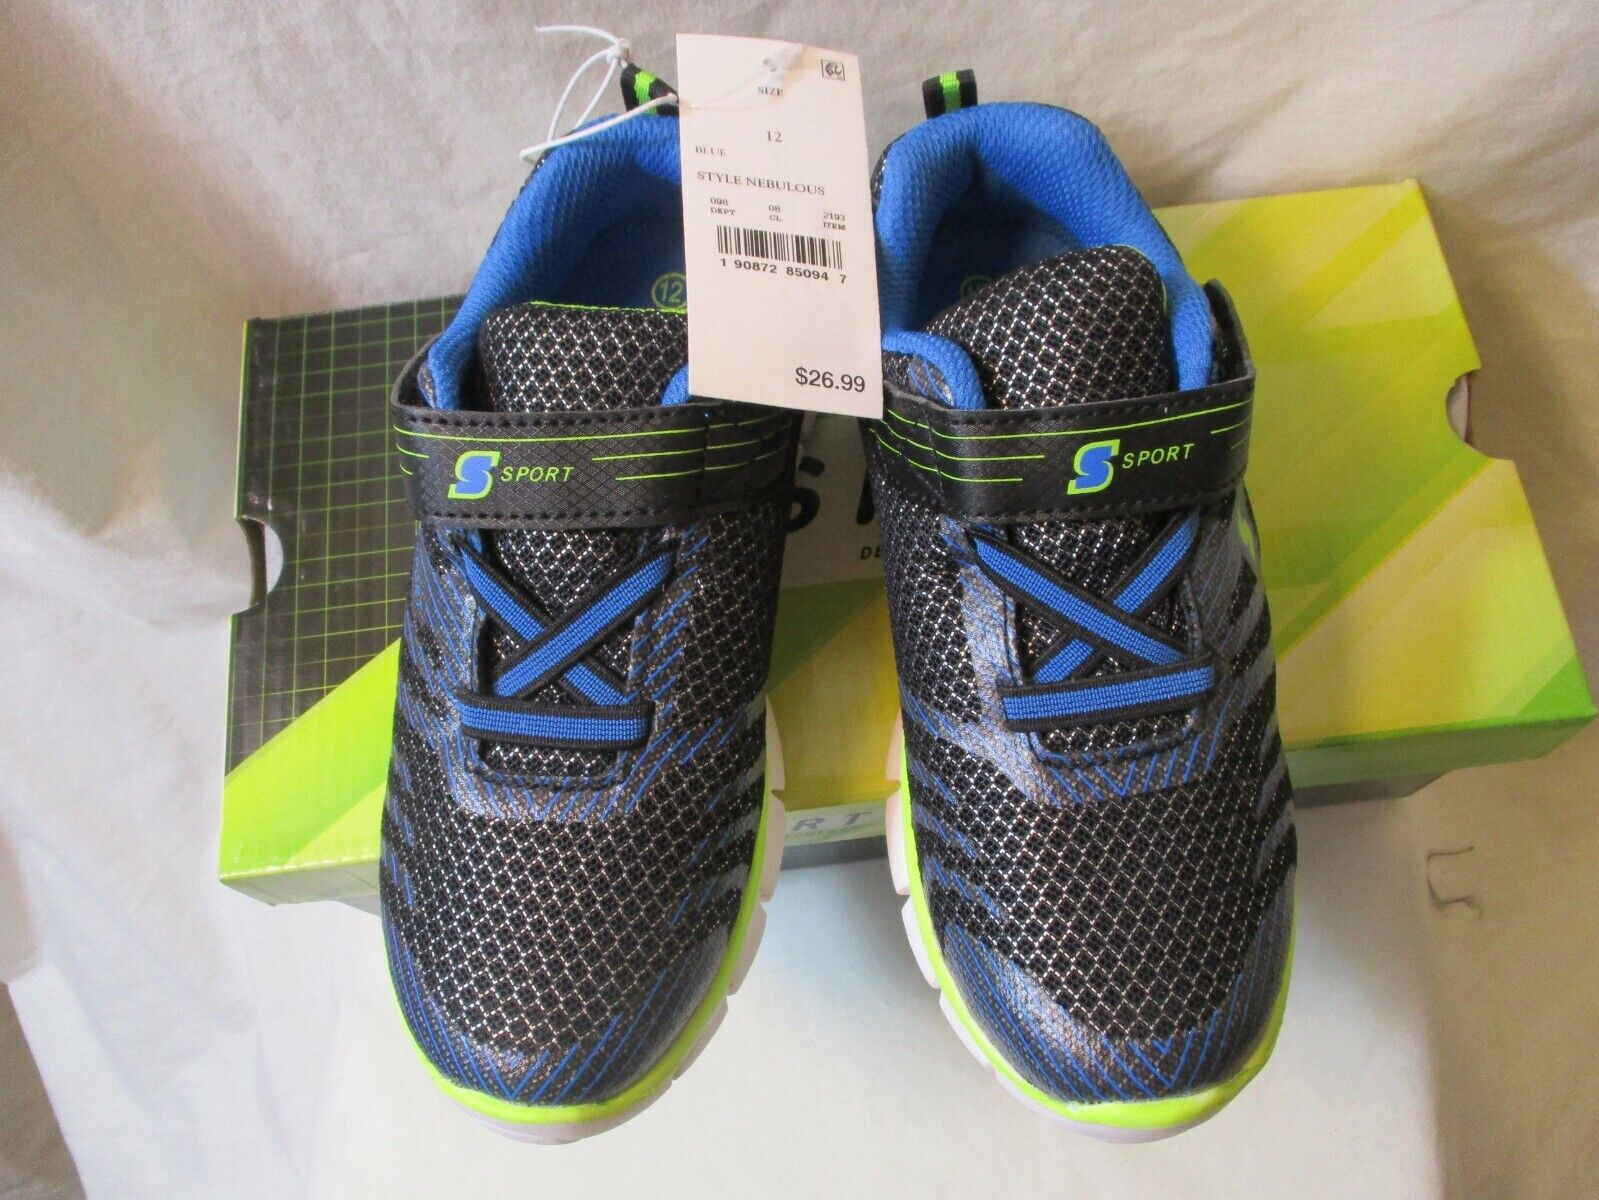 NWT S Sport by Skechers Nebulous Toddler Boys Athletic Shoes